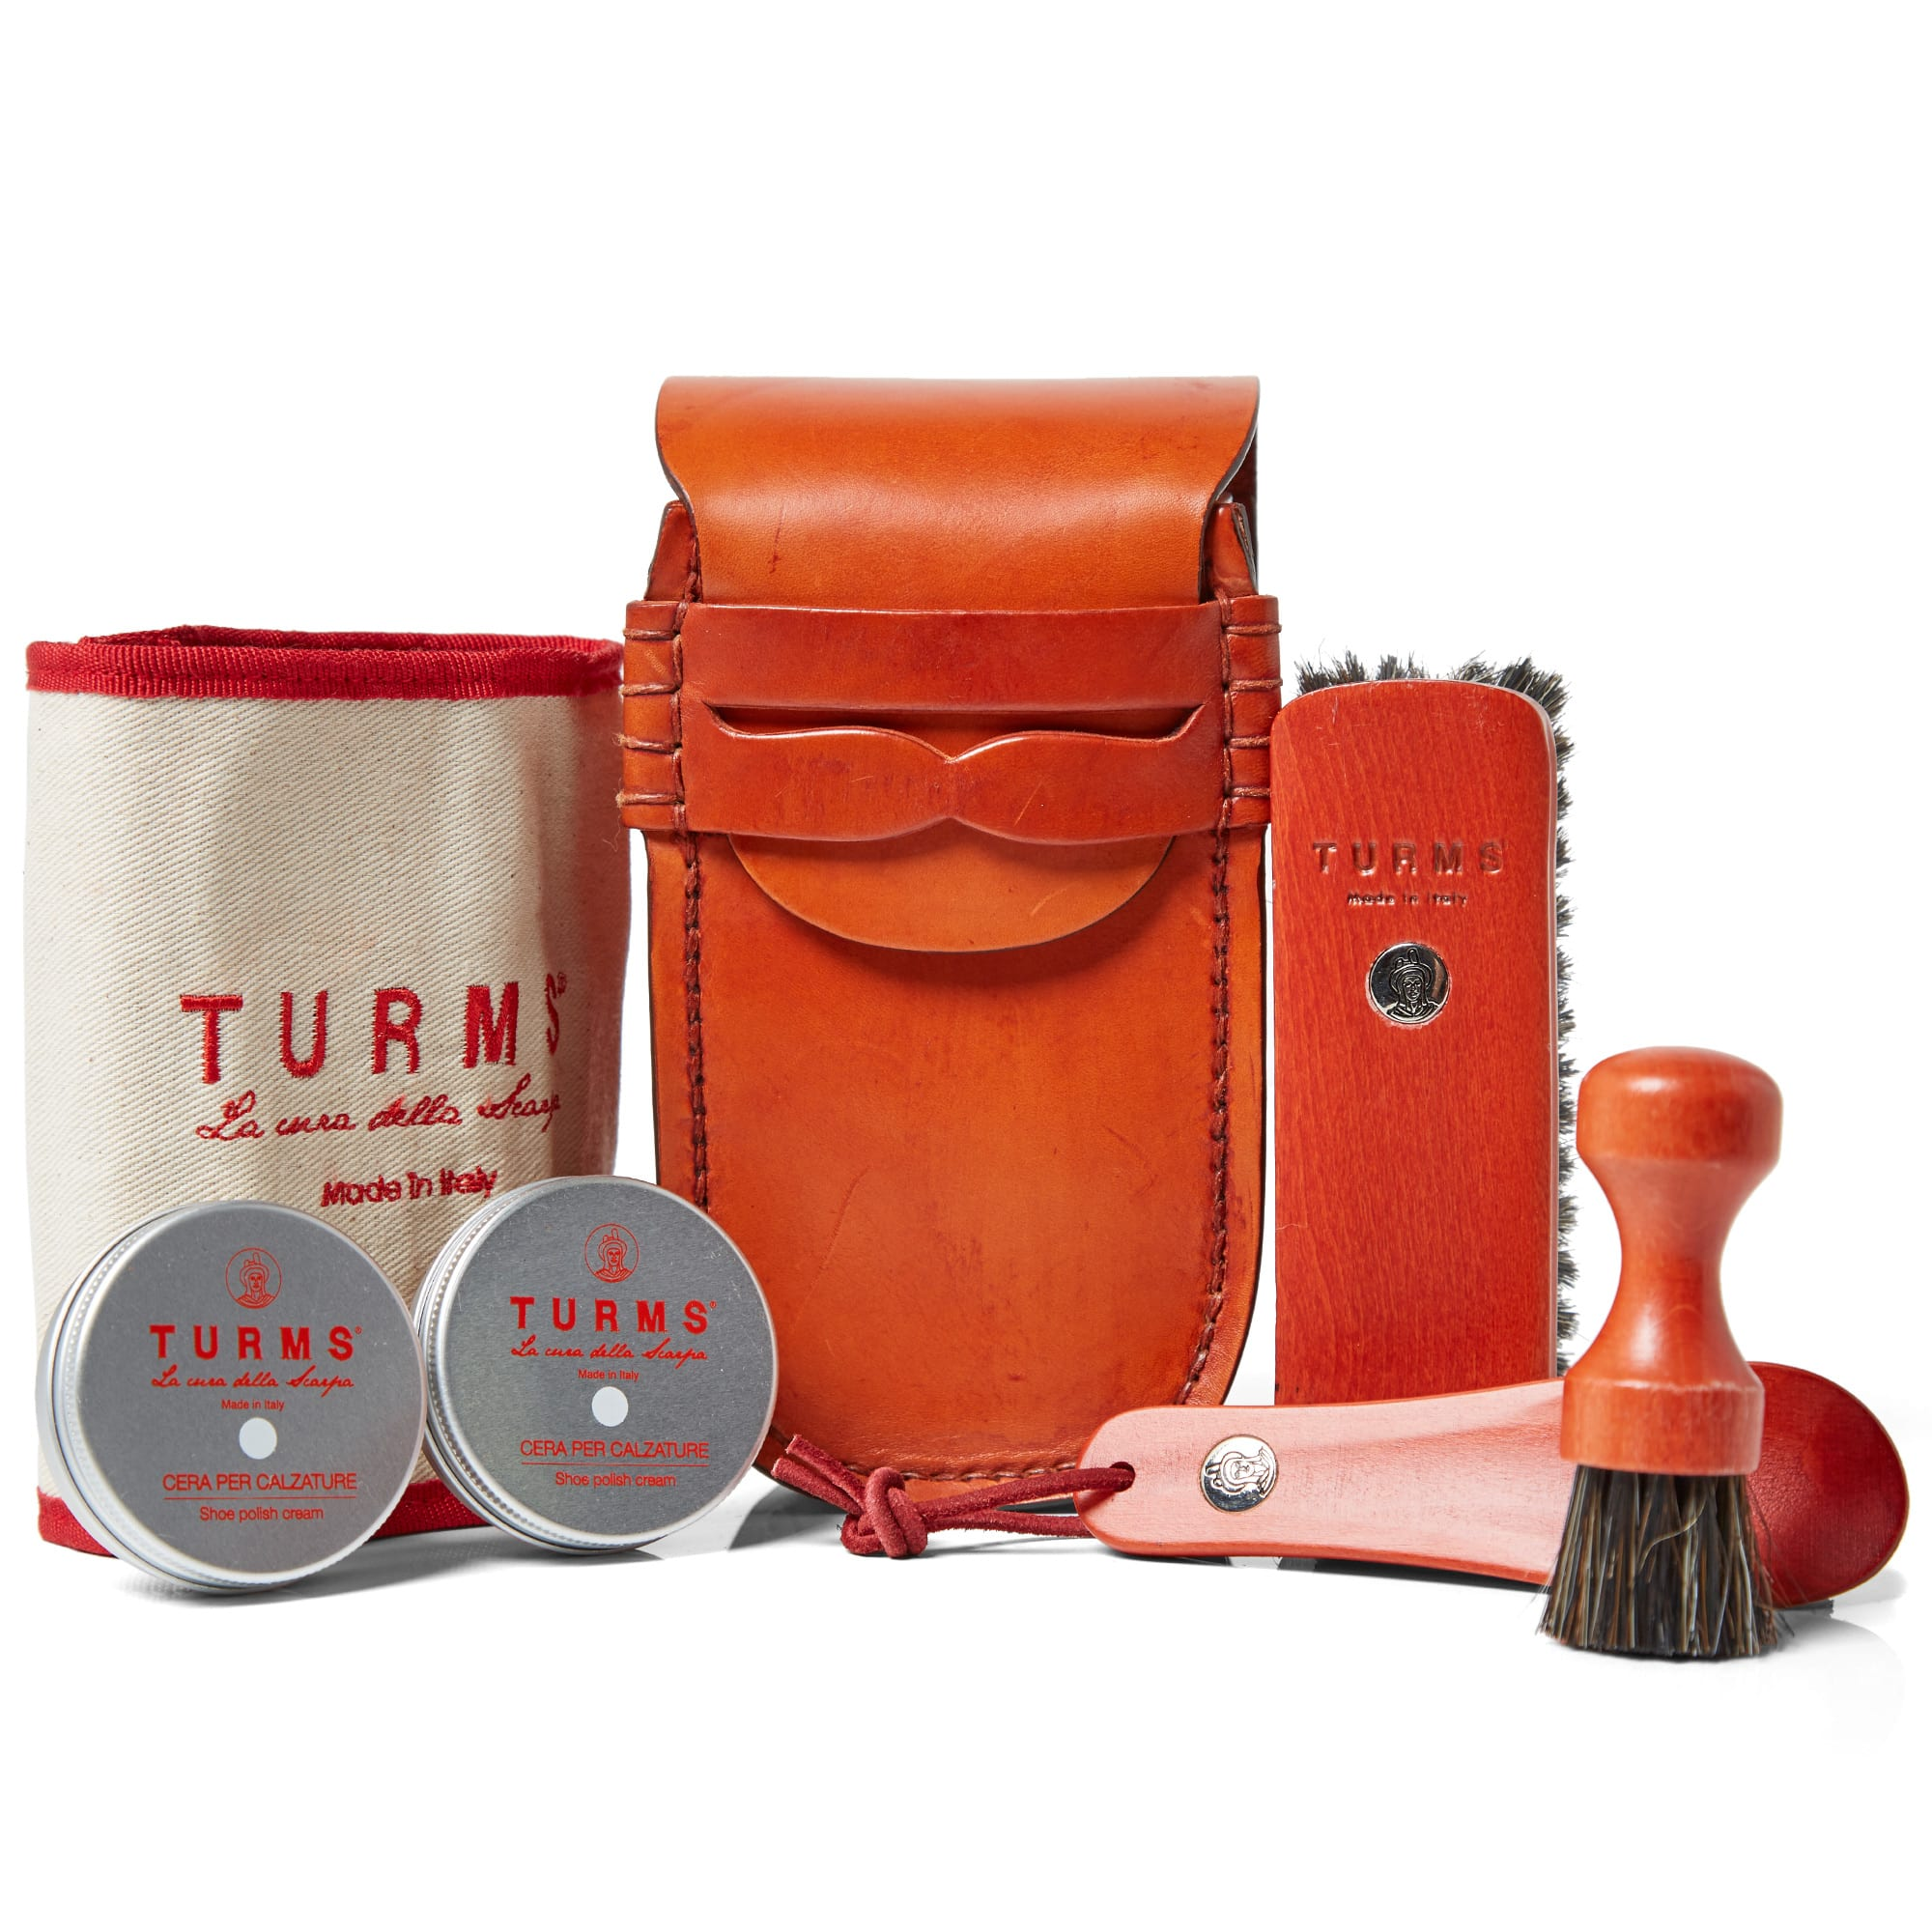 TURMS HAND STITCHED COLLEGE CARE KIT